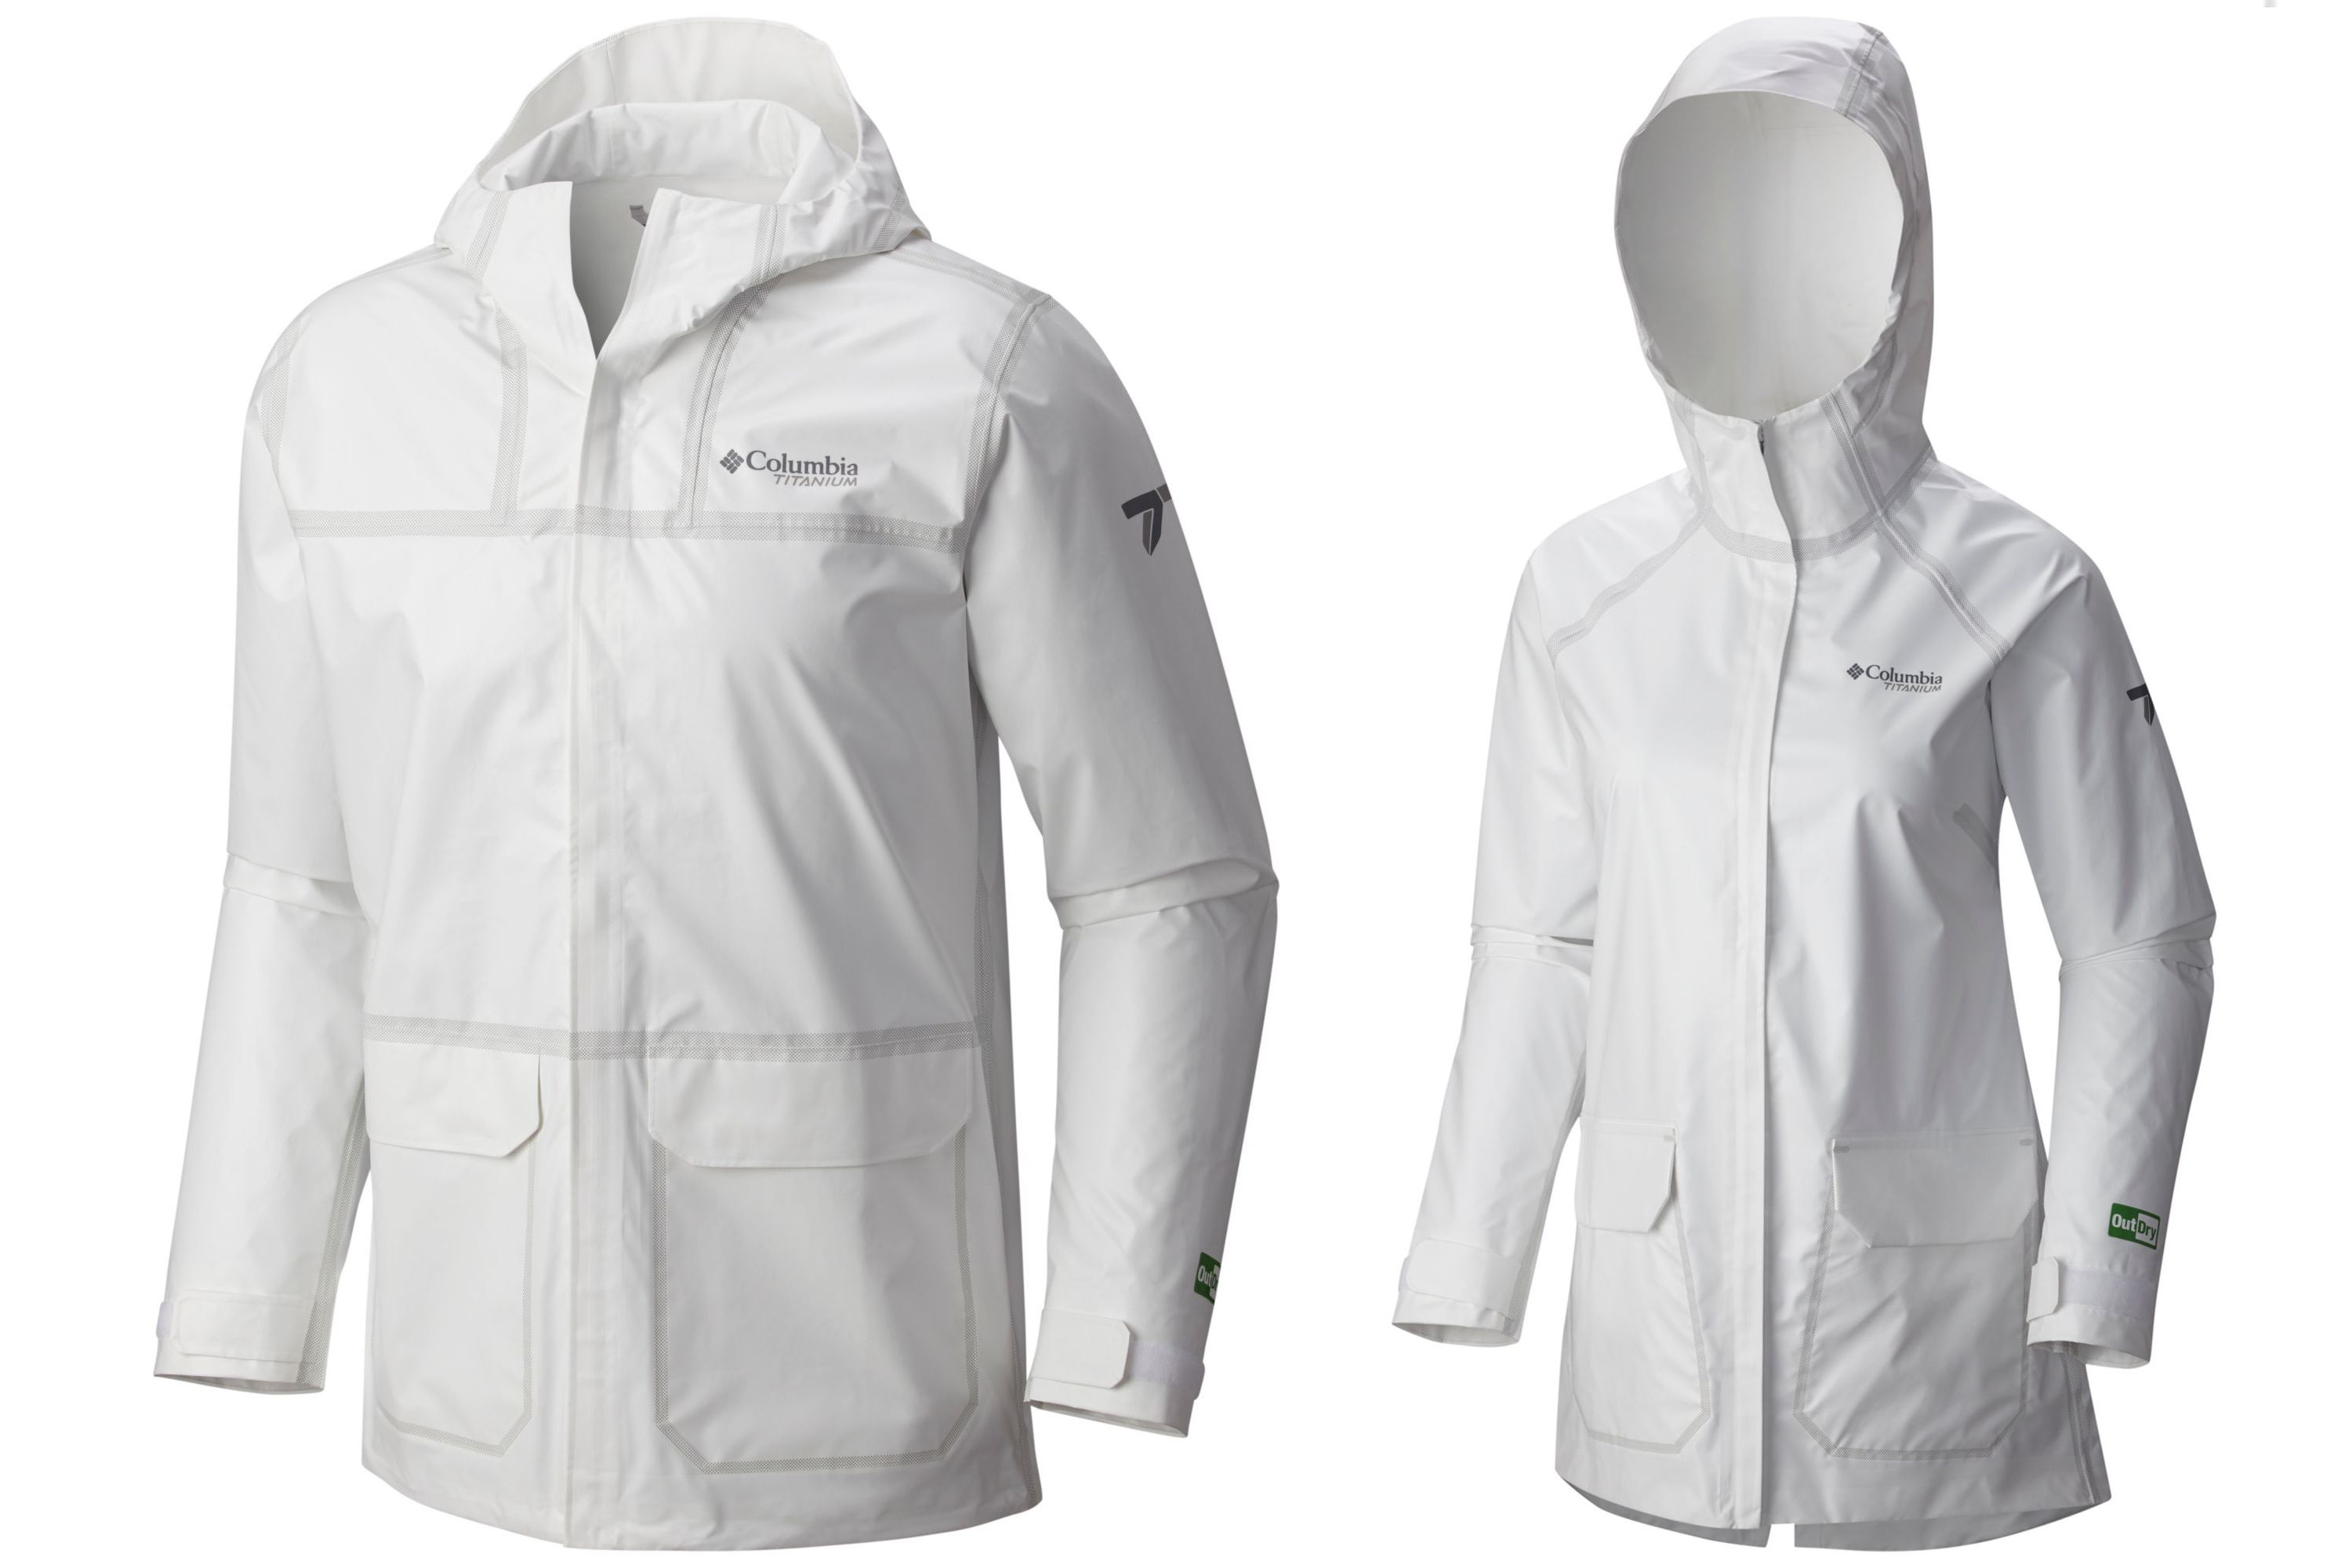 Columbia OutDry Eco Extreme jacket